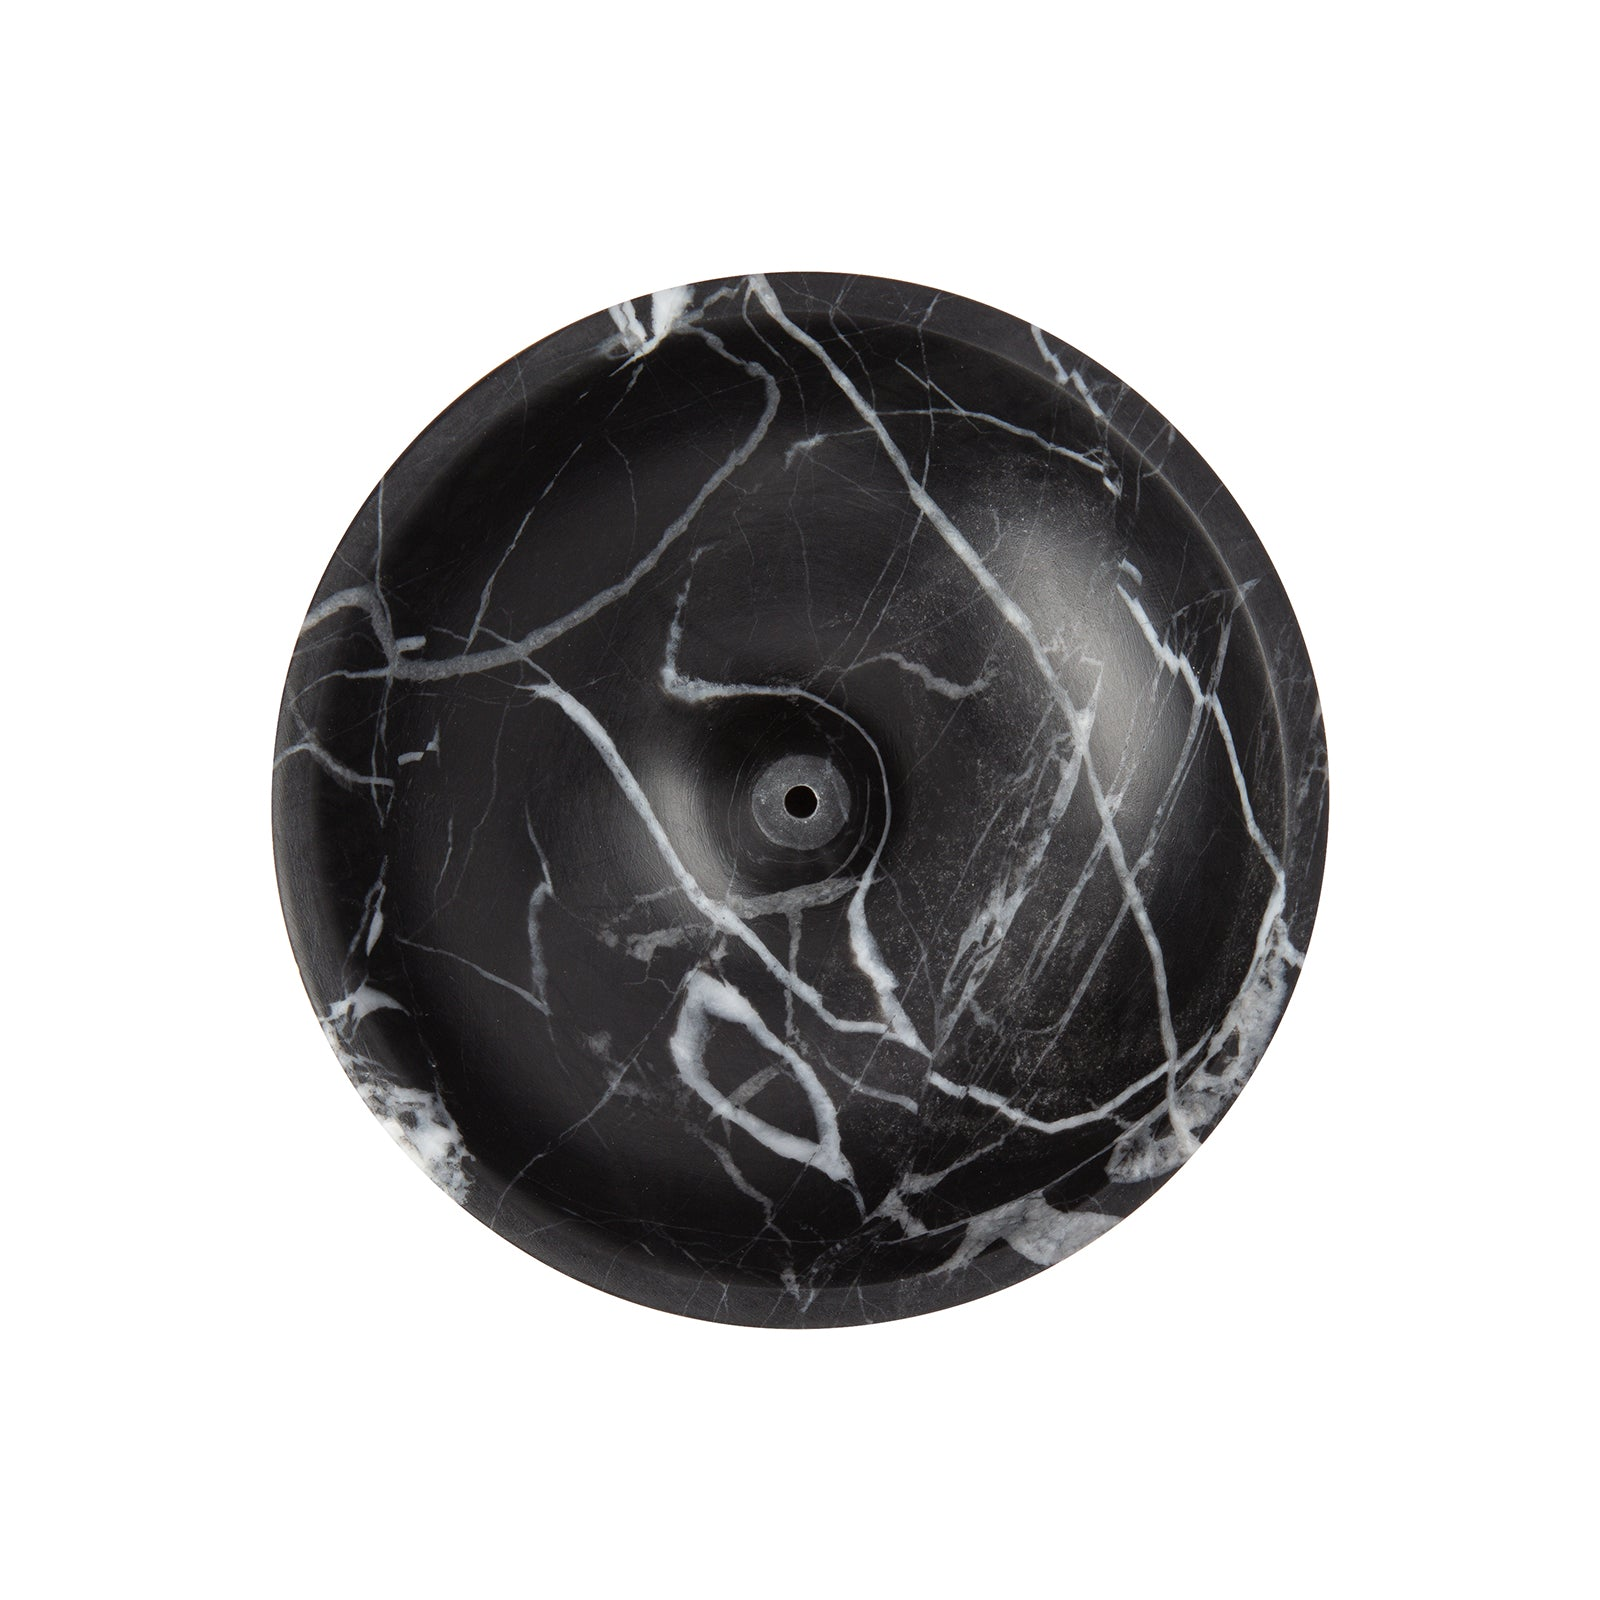 BE Home Small Incense Holder - Black Marble - Home & Decor - Broken English Jewelry